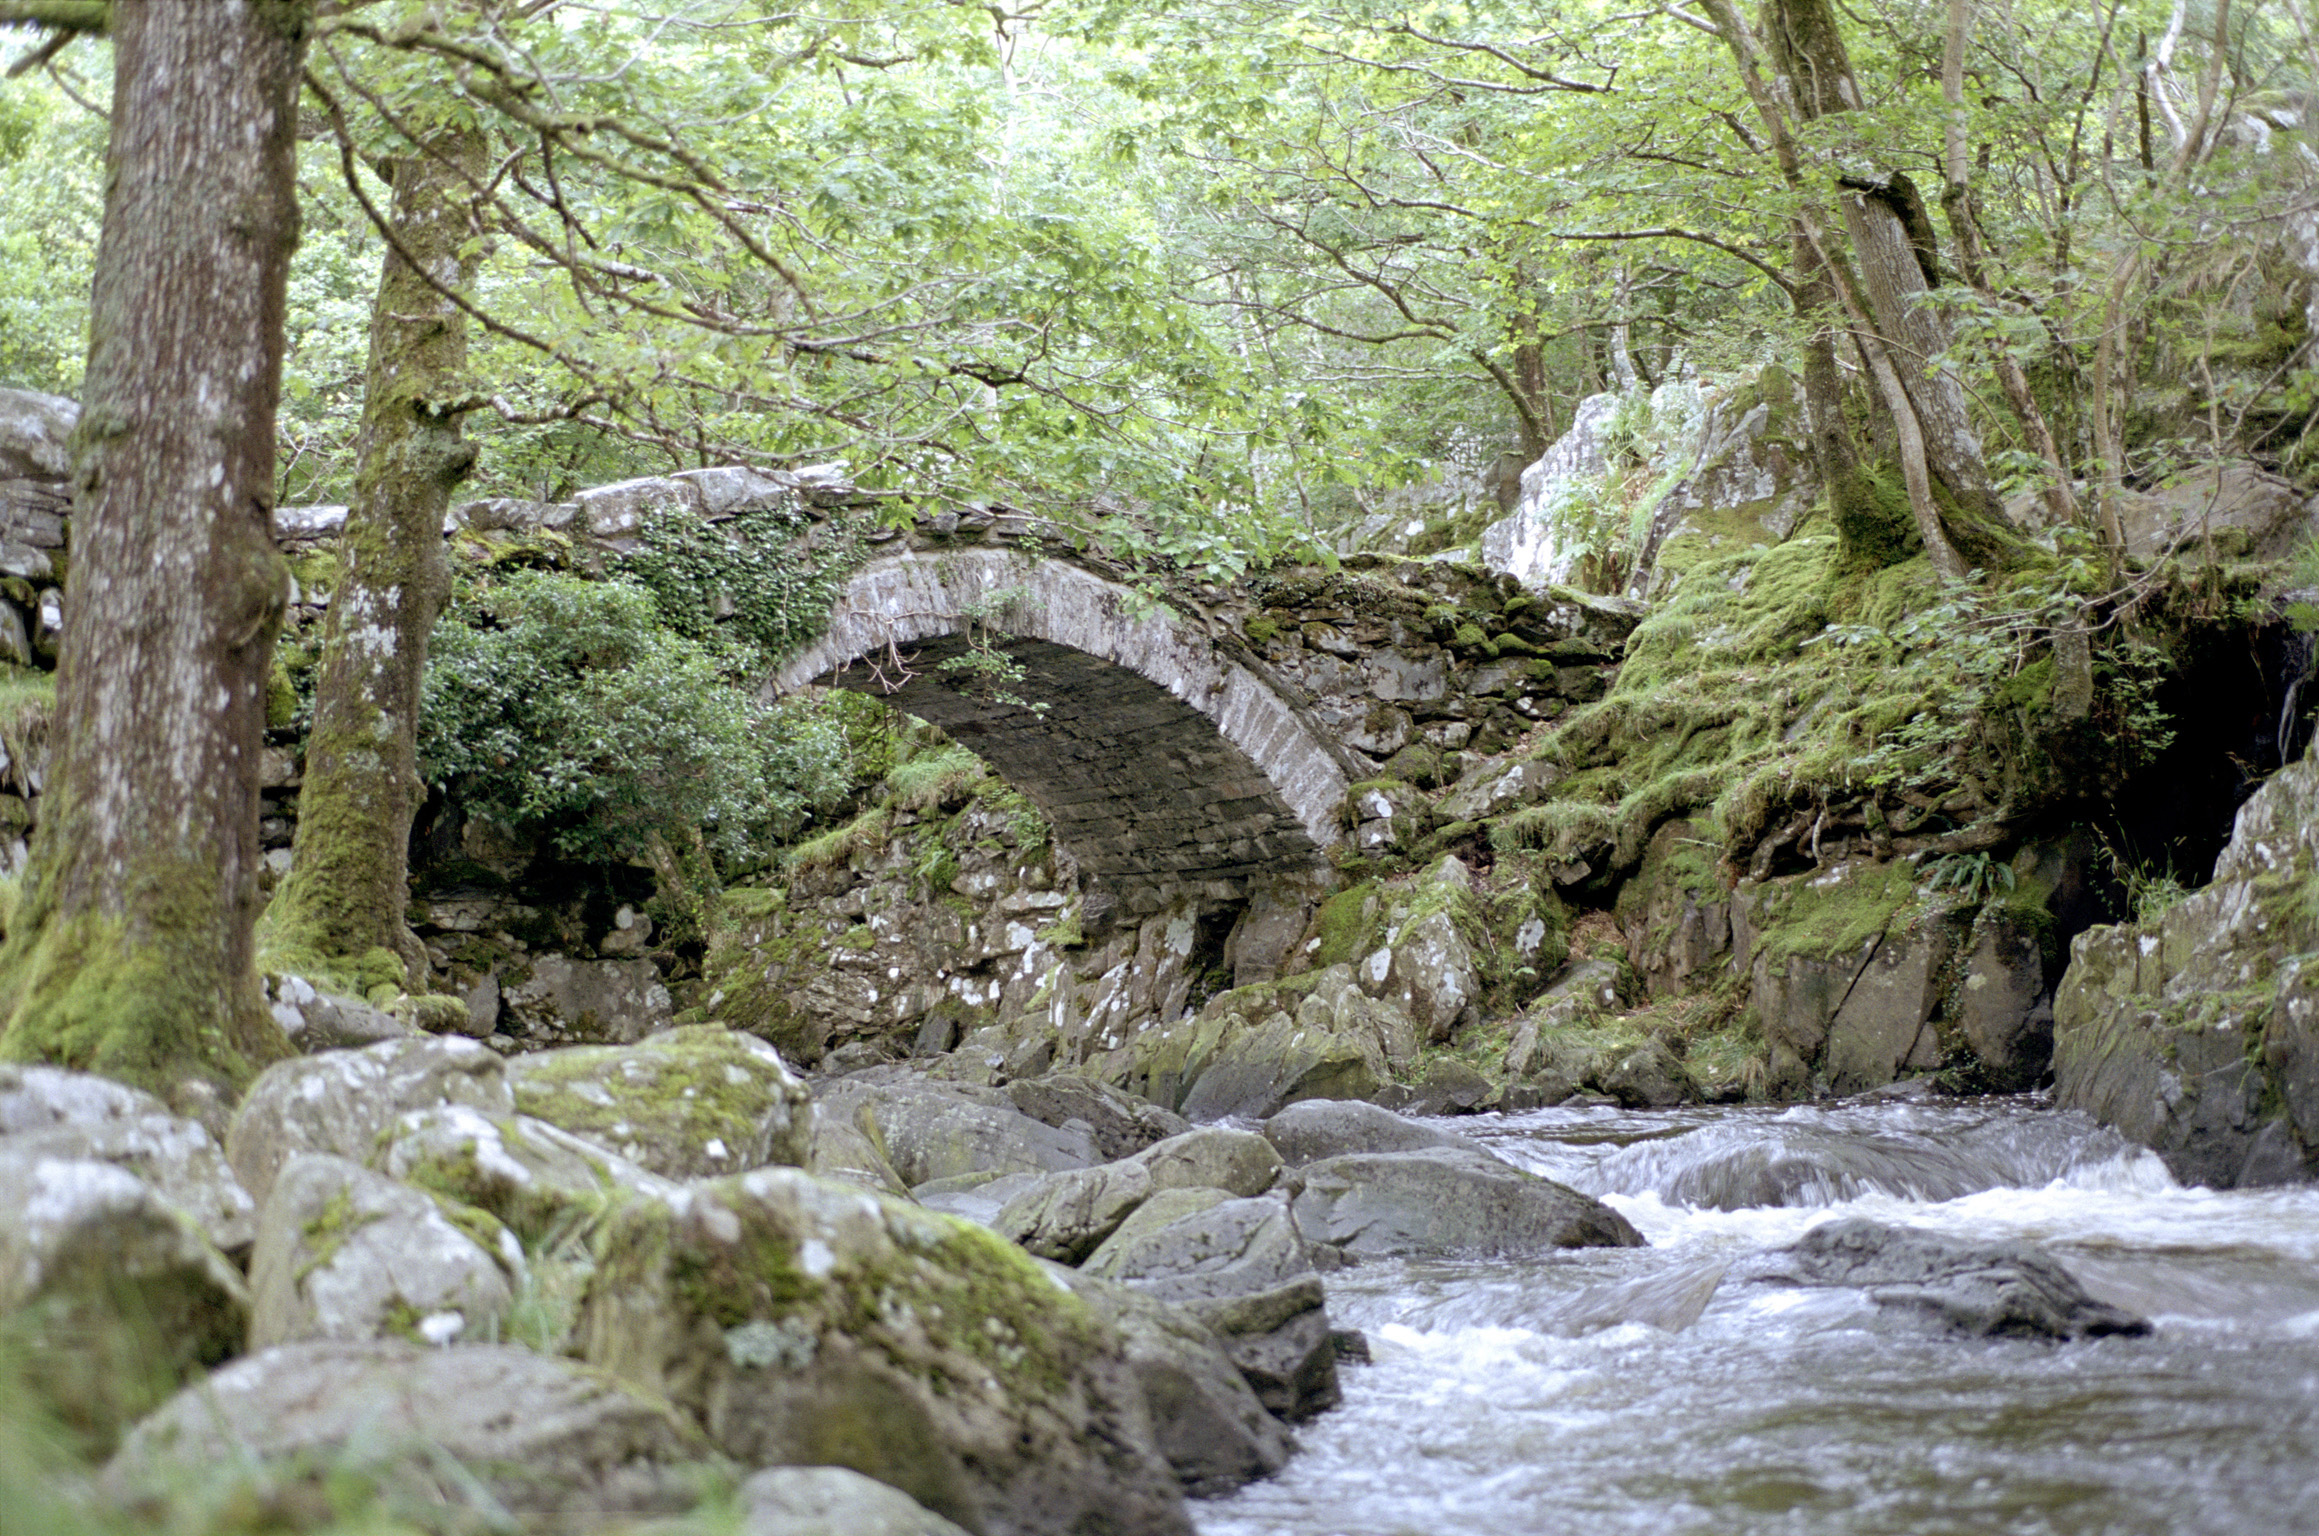 Low angle view over the rocks and flowing water of an arched stone bridge over a river in a leafy green woodland setting